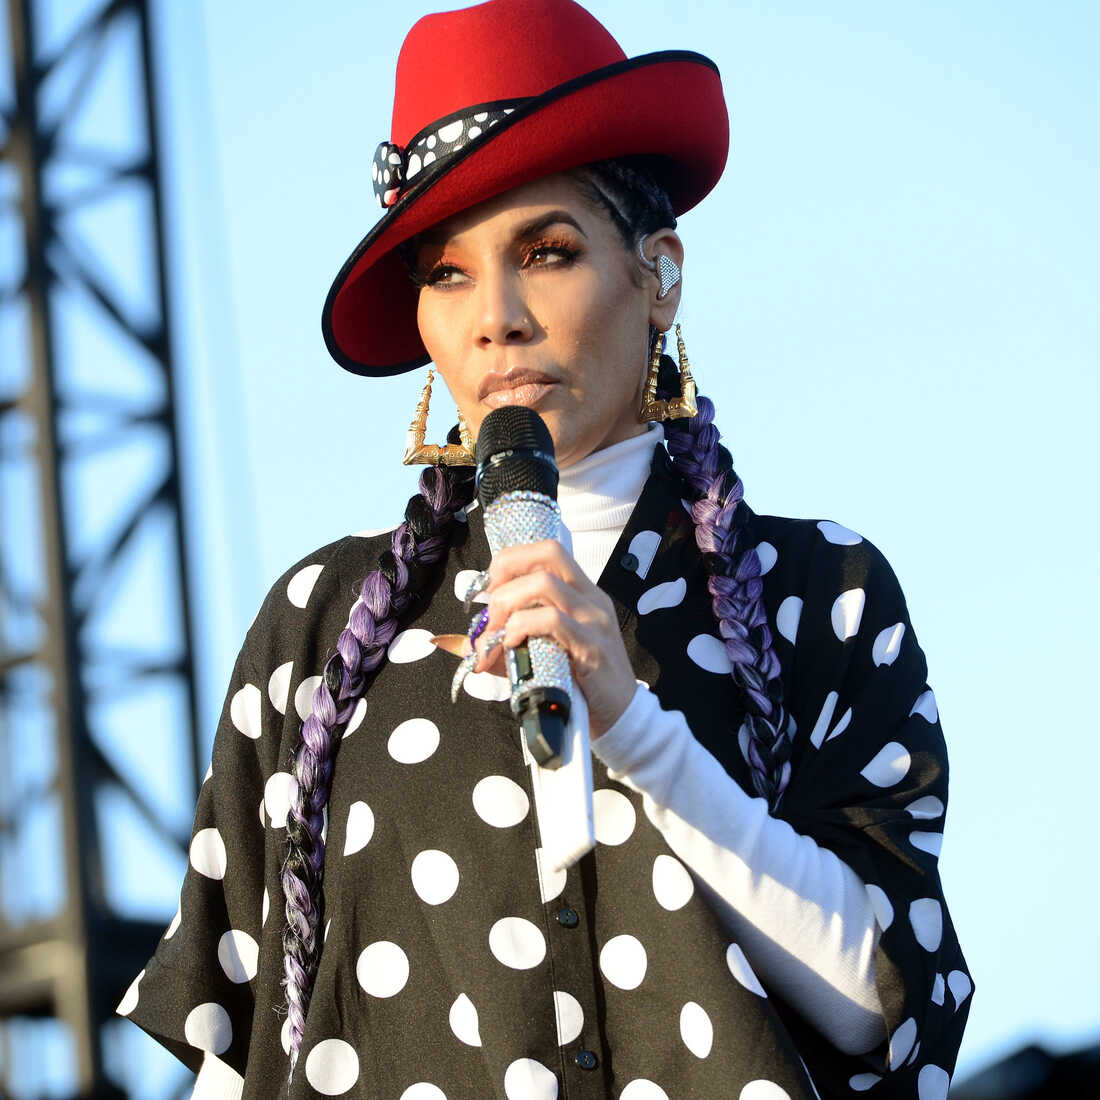 Singer Ivy Queen performs onstage during the Tropicalia Music and Taco Festival at Queen Mary Events Park on November 11, 2017 in Long Beach, California. (Photo by Scott Dudelson/Getty Images)